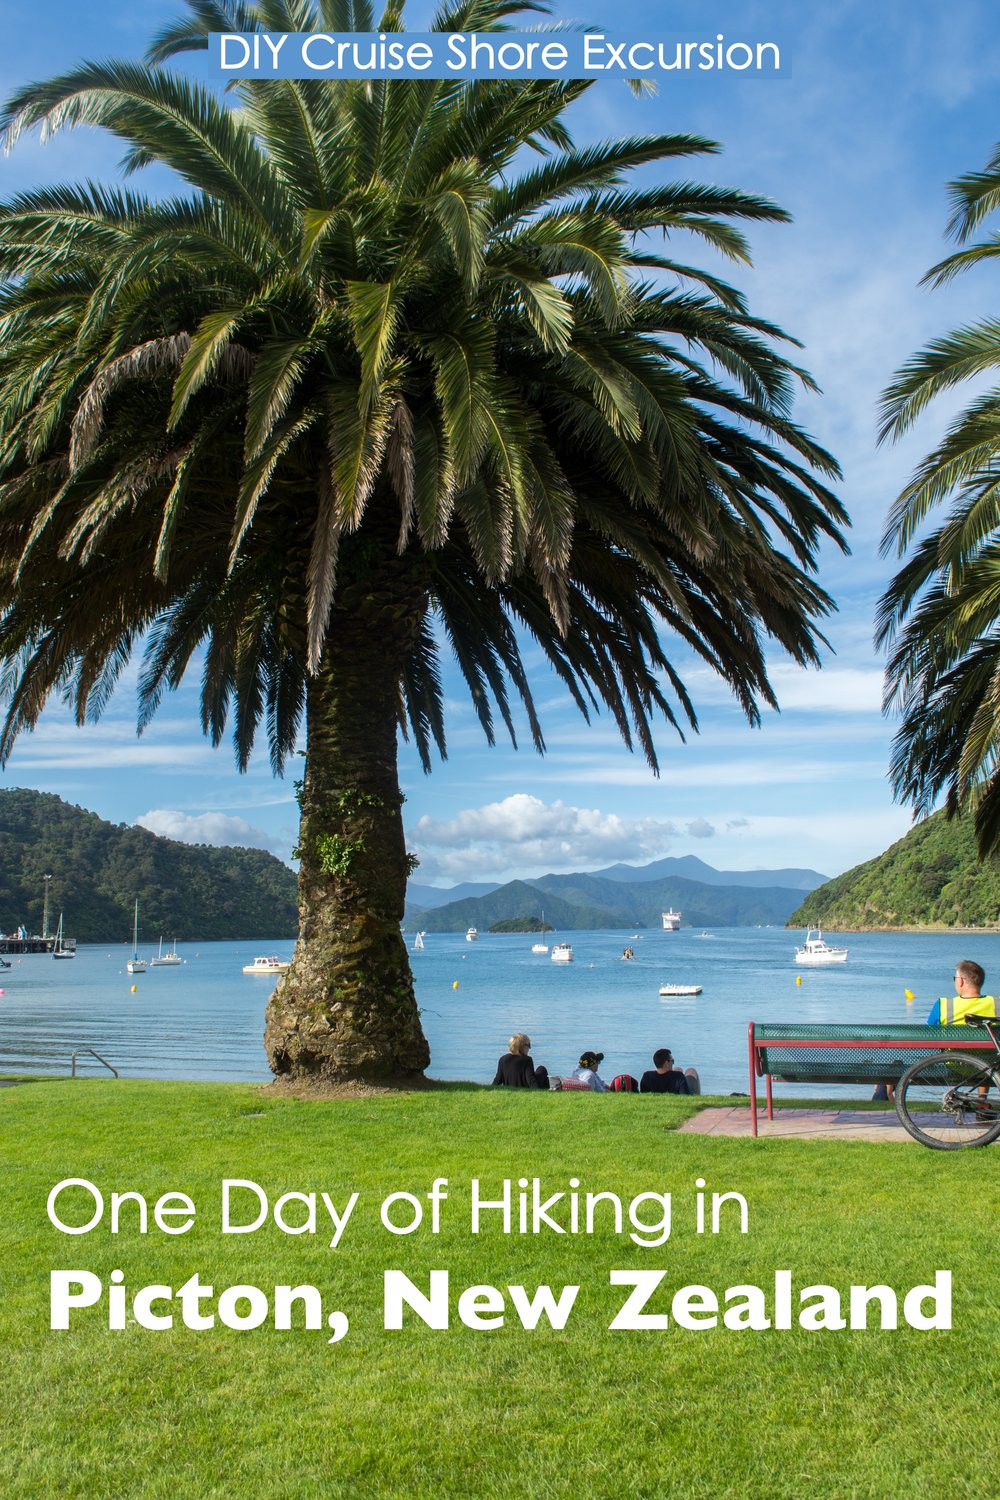 One Day Hiking in Picton, New Zealand.  A DIY shore excursion for Cruise Ship Passengers.  6 hours in Picton. #NewZealand #Picton #Hiking #OneDay